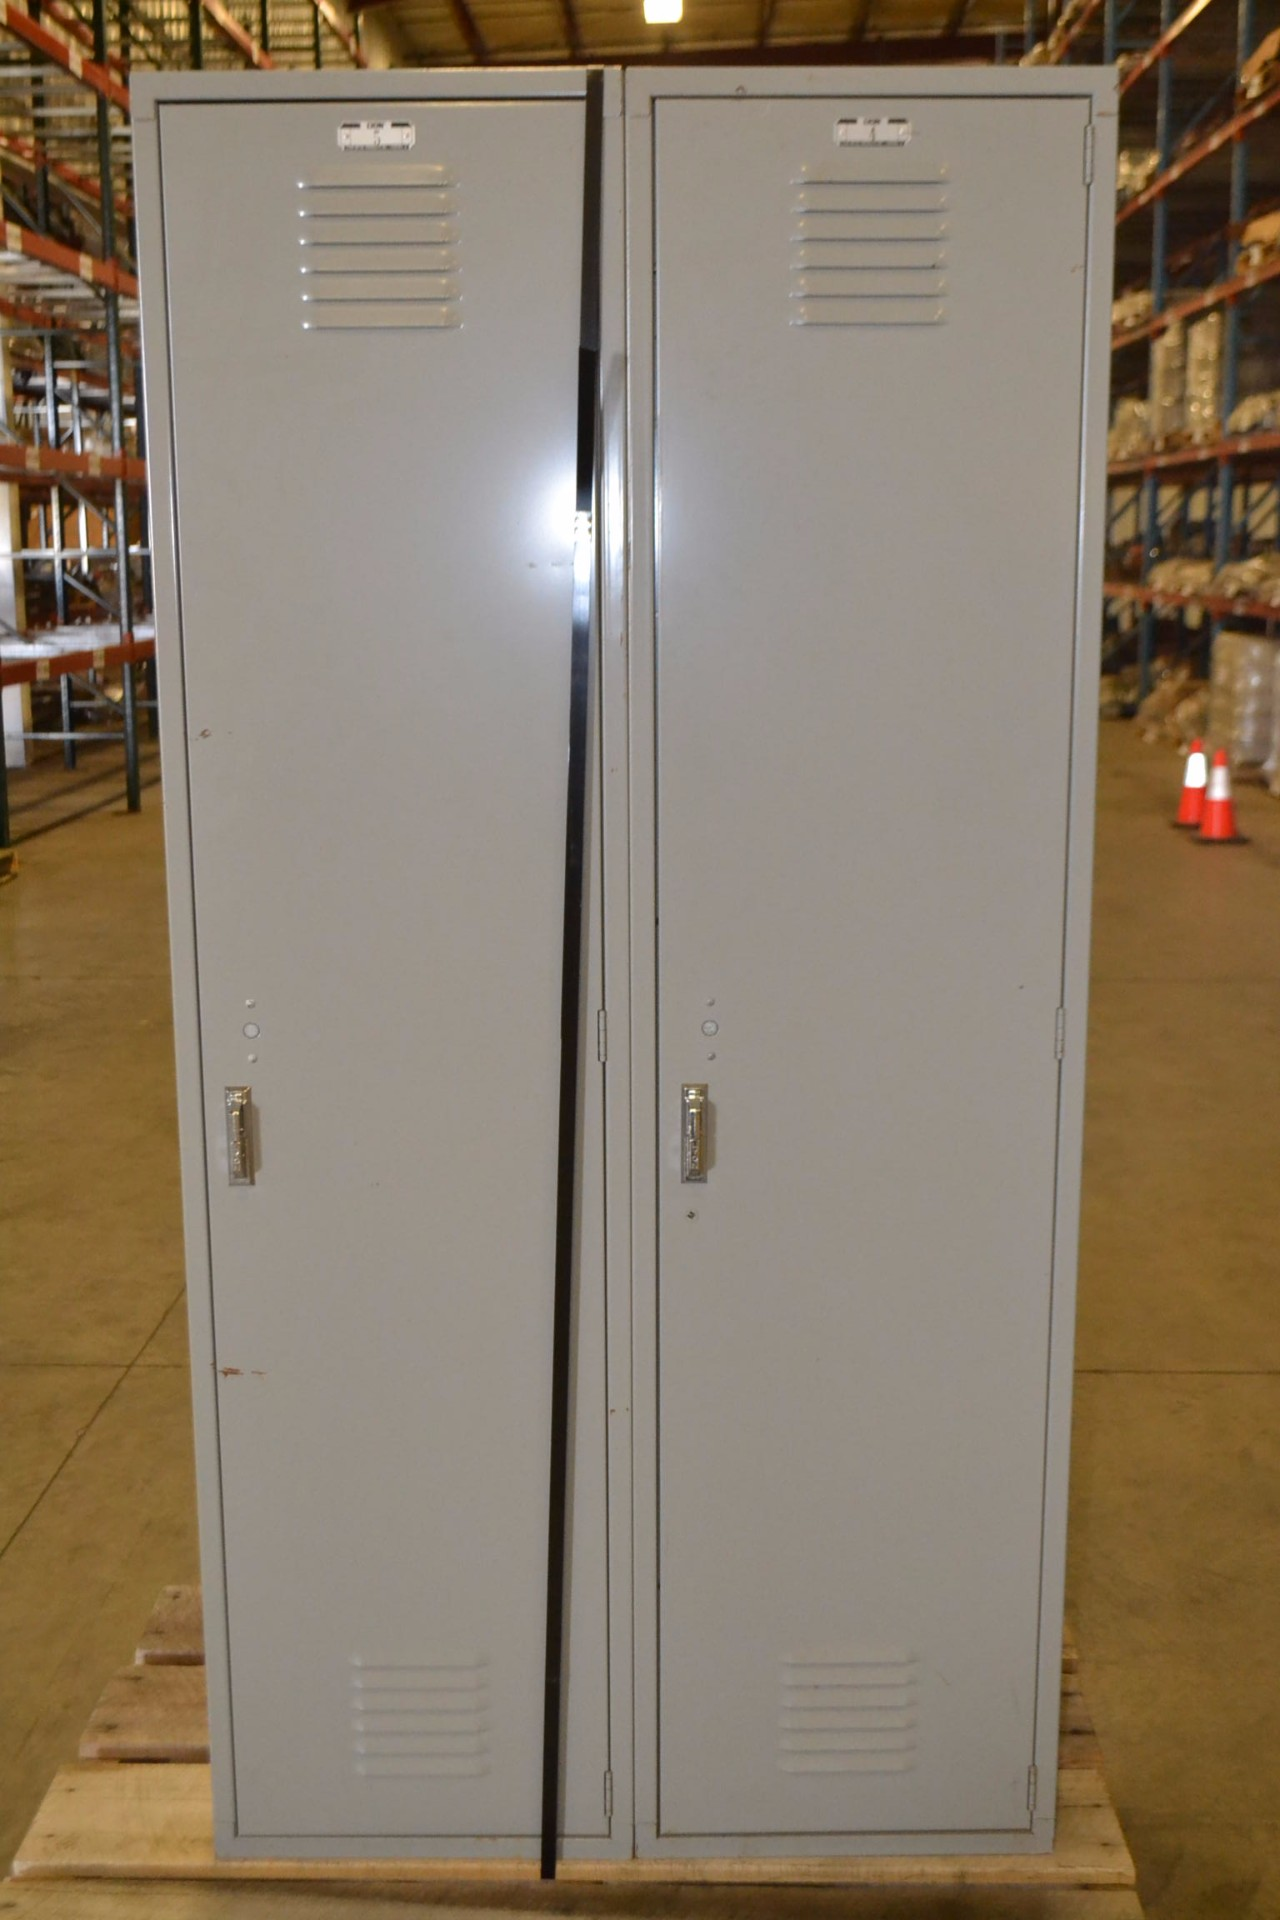 SET OF 2 FULL HEIGHT METAL LYON LOCKERS